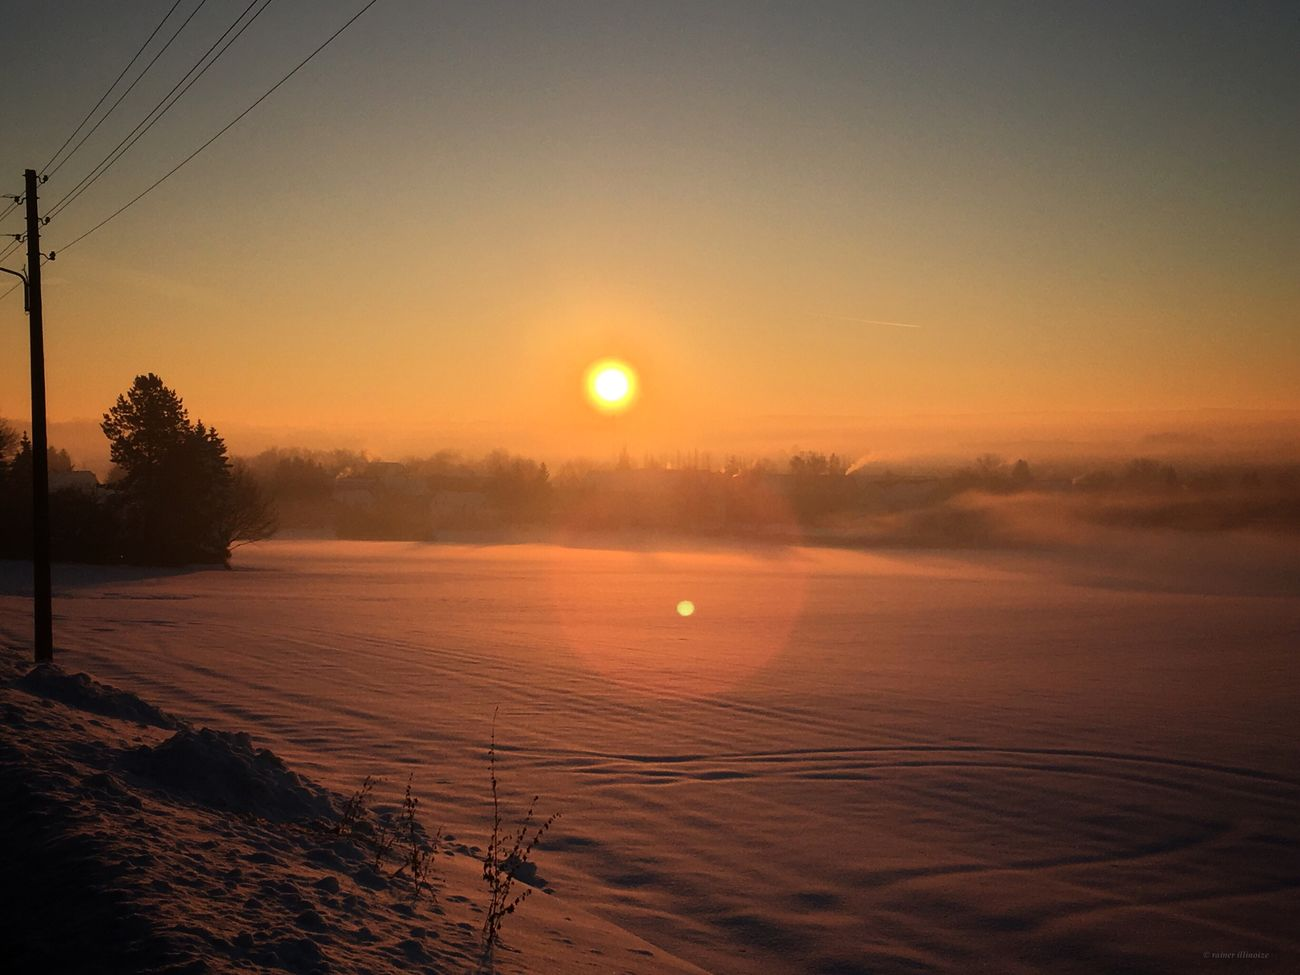 Nutzung im Morgenrot Sunset Morning Morning Sun Beauty In Nature Winter Snow Outdoors Sun Taking Photos Wintertime Enjoying Life Germany Oberlungwitz Cold Temperature Driving Around Exploring